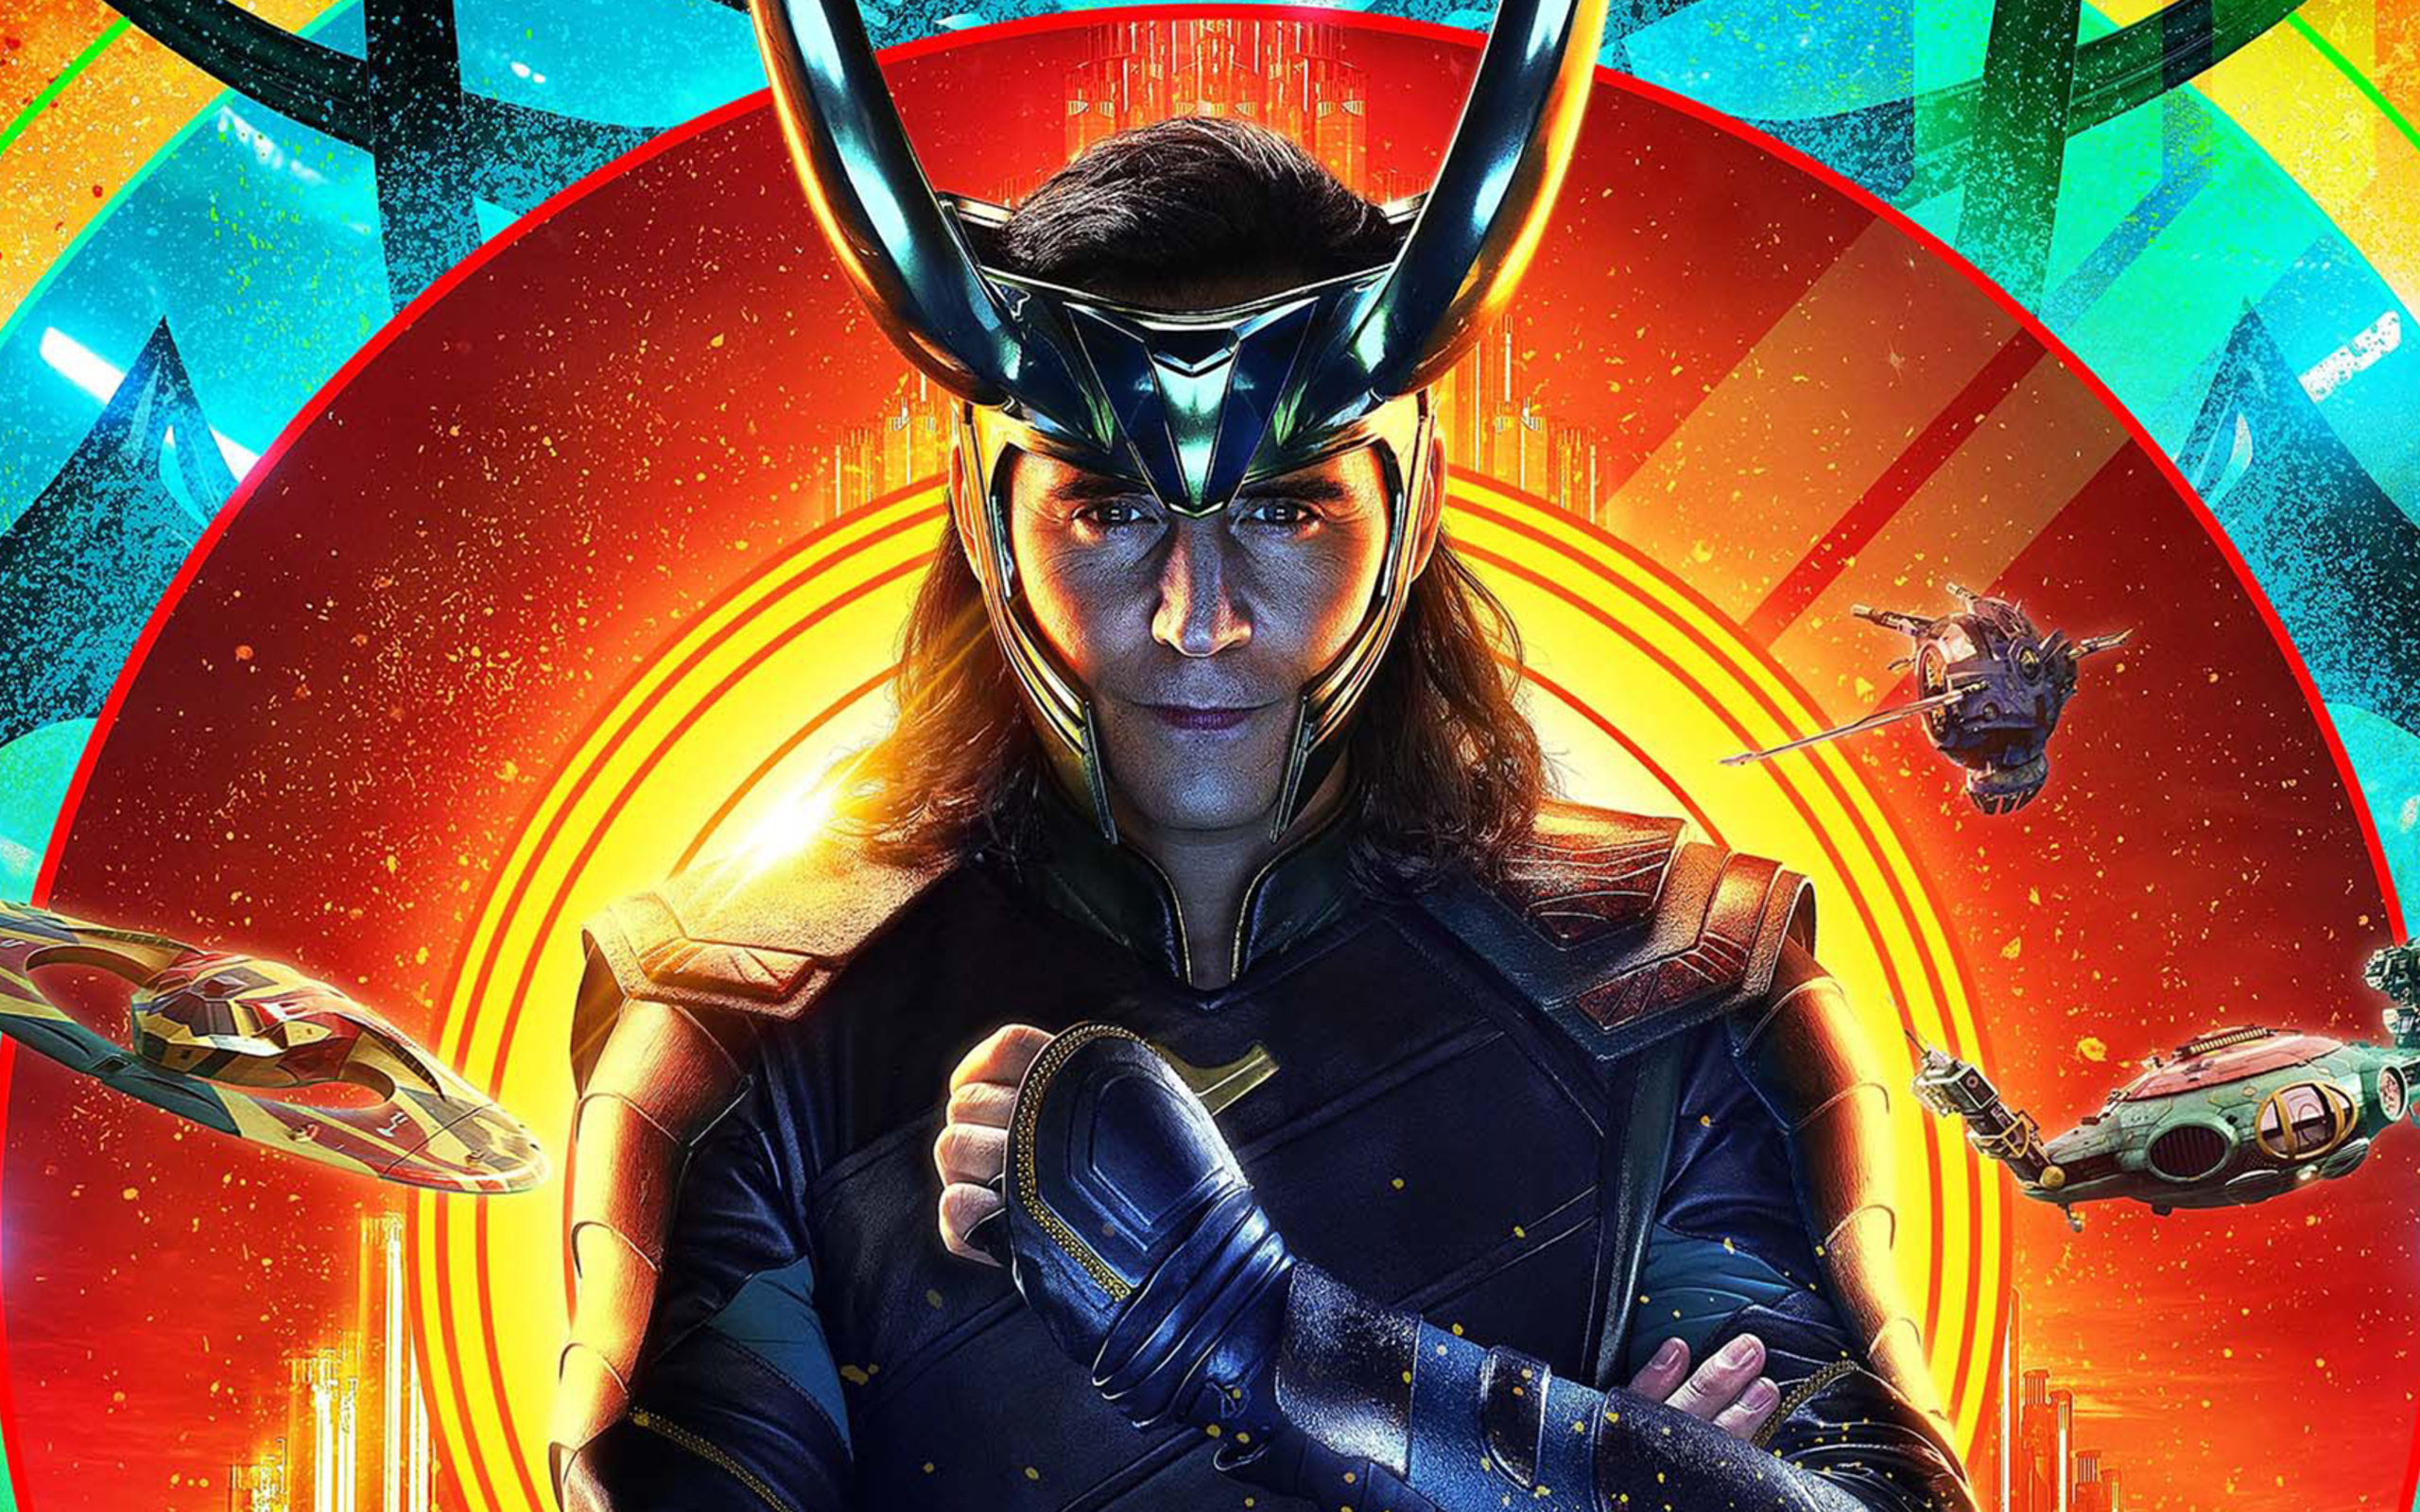 2560x1600 Loki In Thor Ragnarok 2017 2560x1600 Resolution Hd 4k Wallpapers Images Backgrounds Photos And Pictures